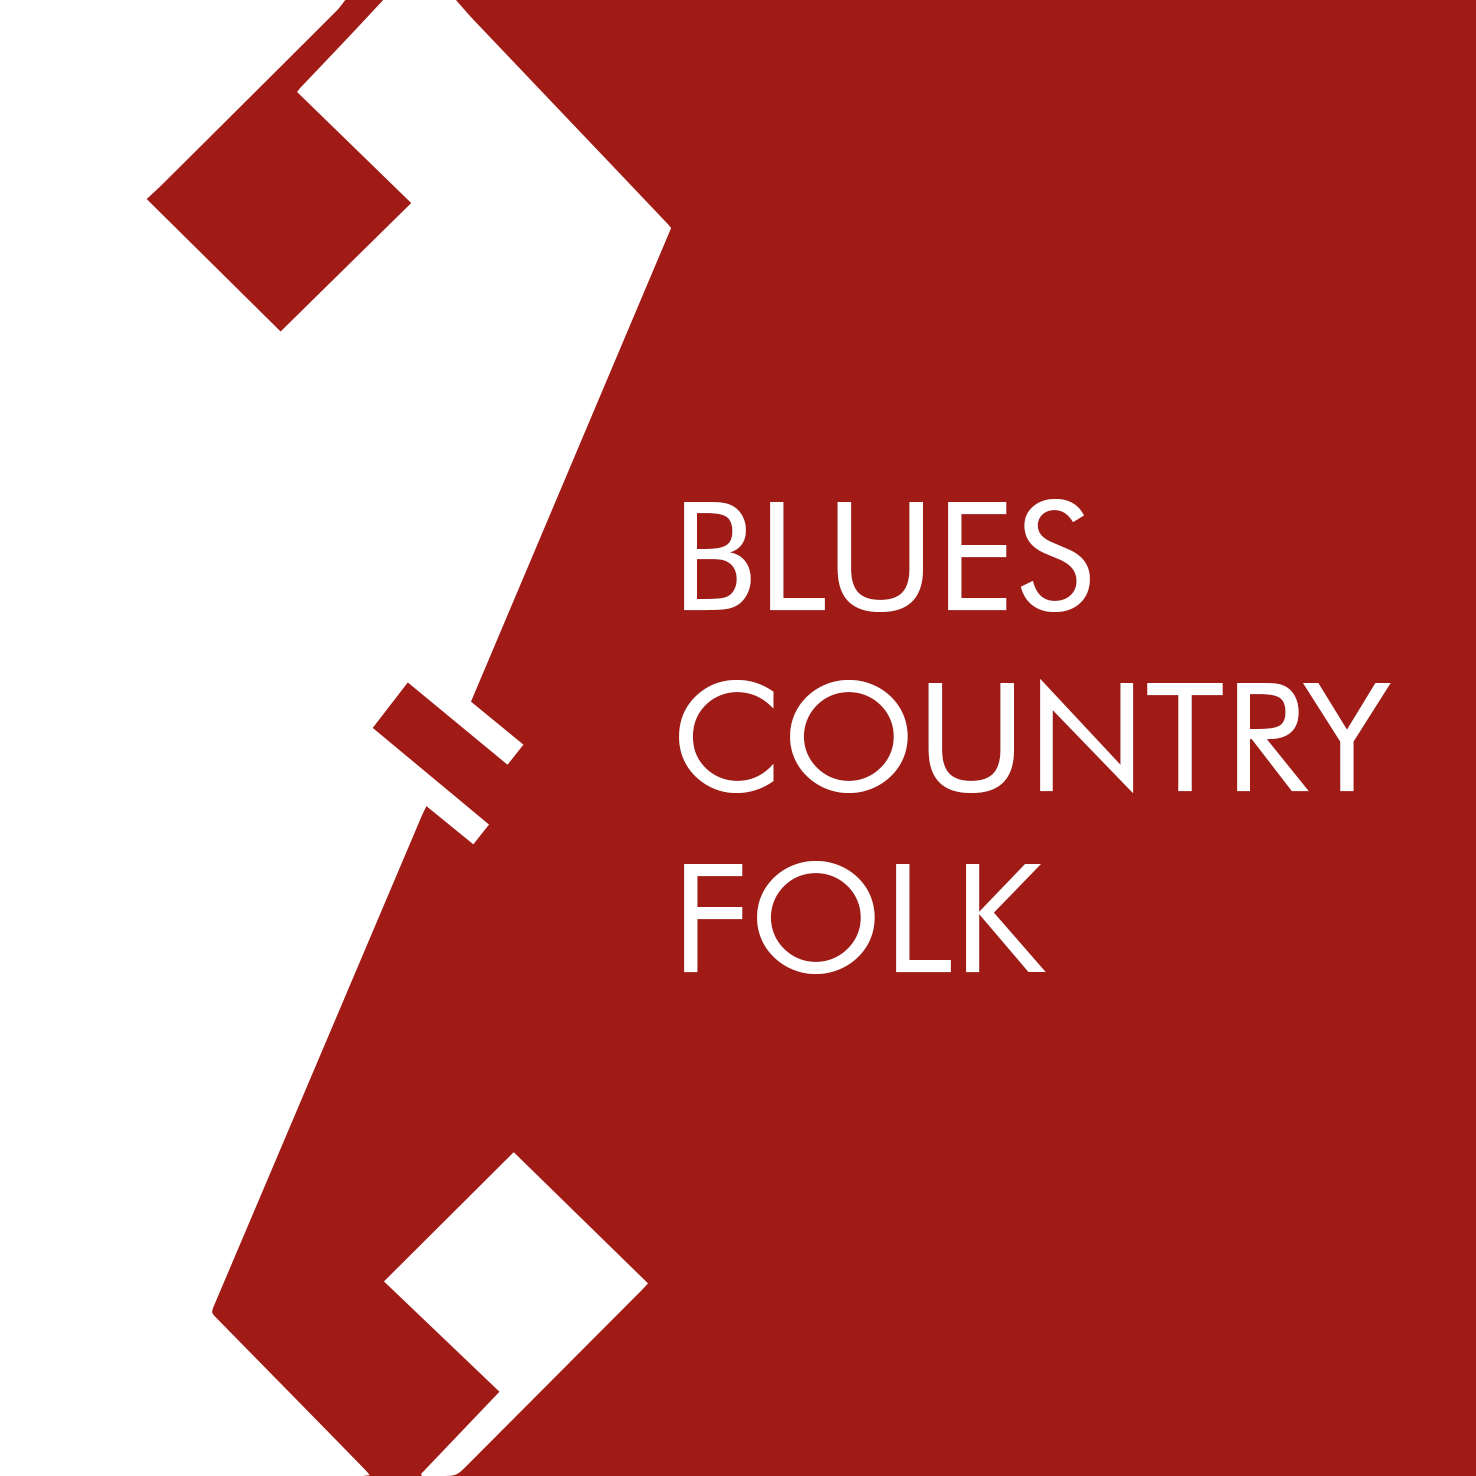 BLUES - COUNTRY - FOLK